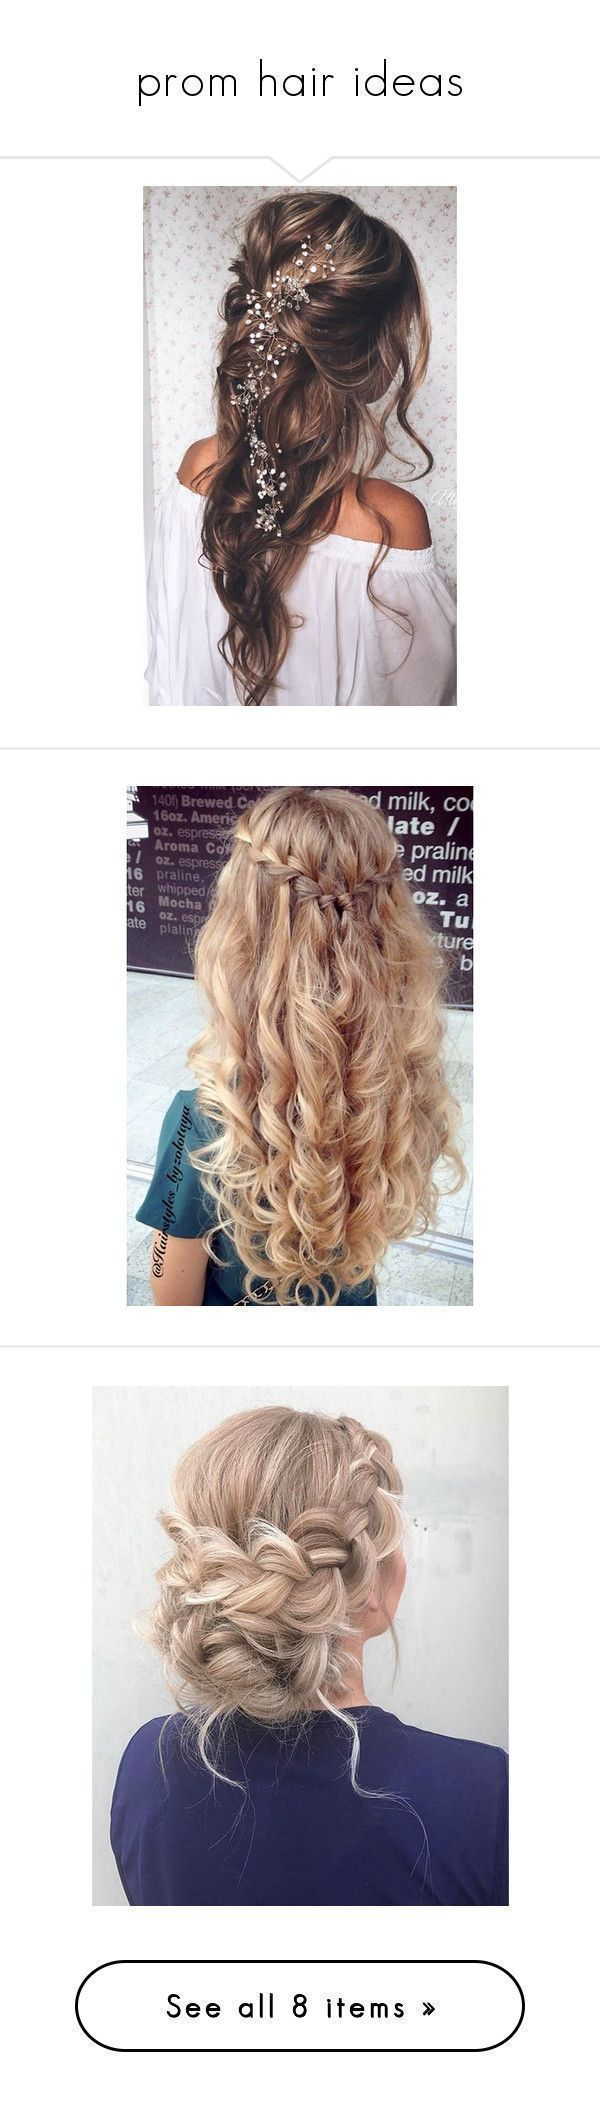 """""""prom hair ideas"""" by lillian365 ❤ liked on Polyvore featuring hair, hairstyles, hair styles, accessories, hair accessories, long hair accessories, prom hair accessories, beauty products, haircare and hair styling tools #promhair #hairandbeauty #homecominghairstyles"""